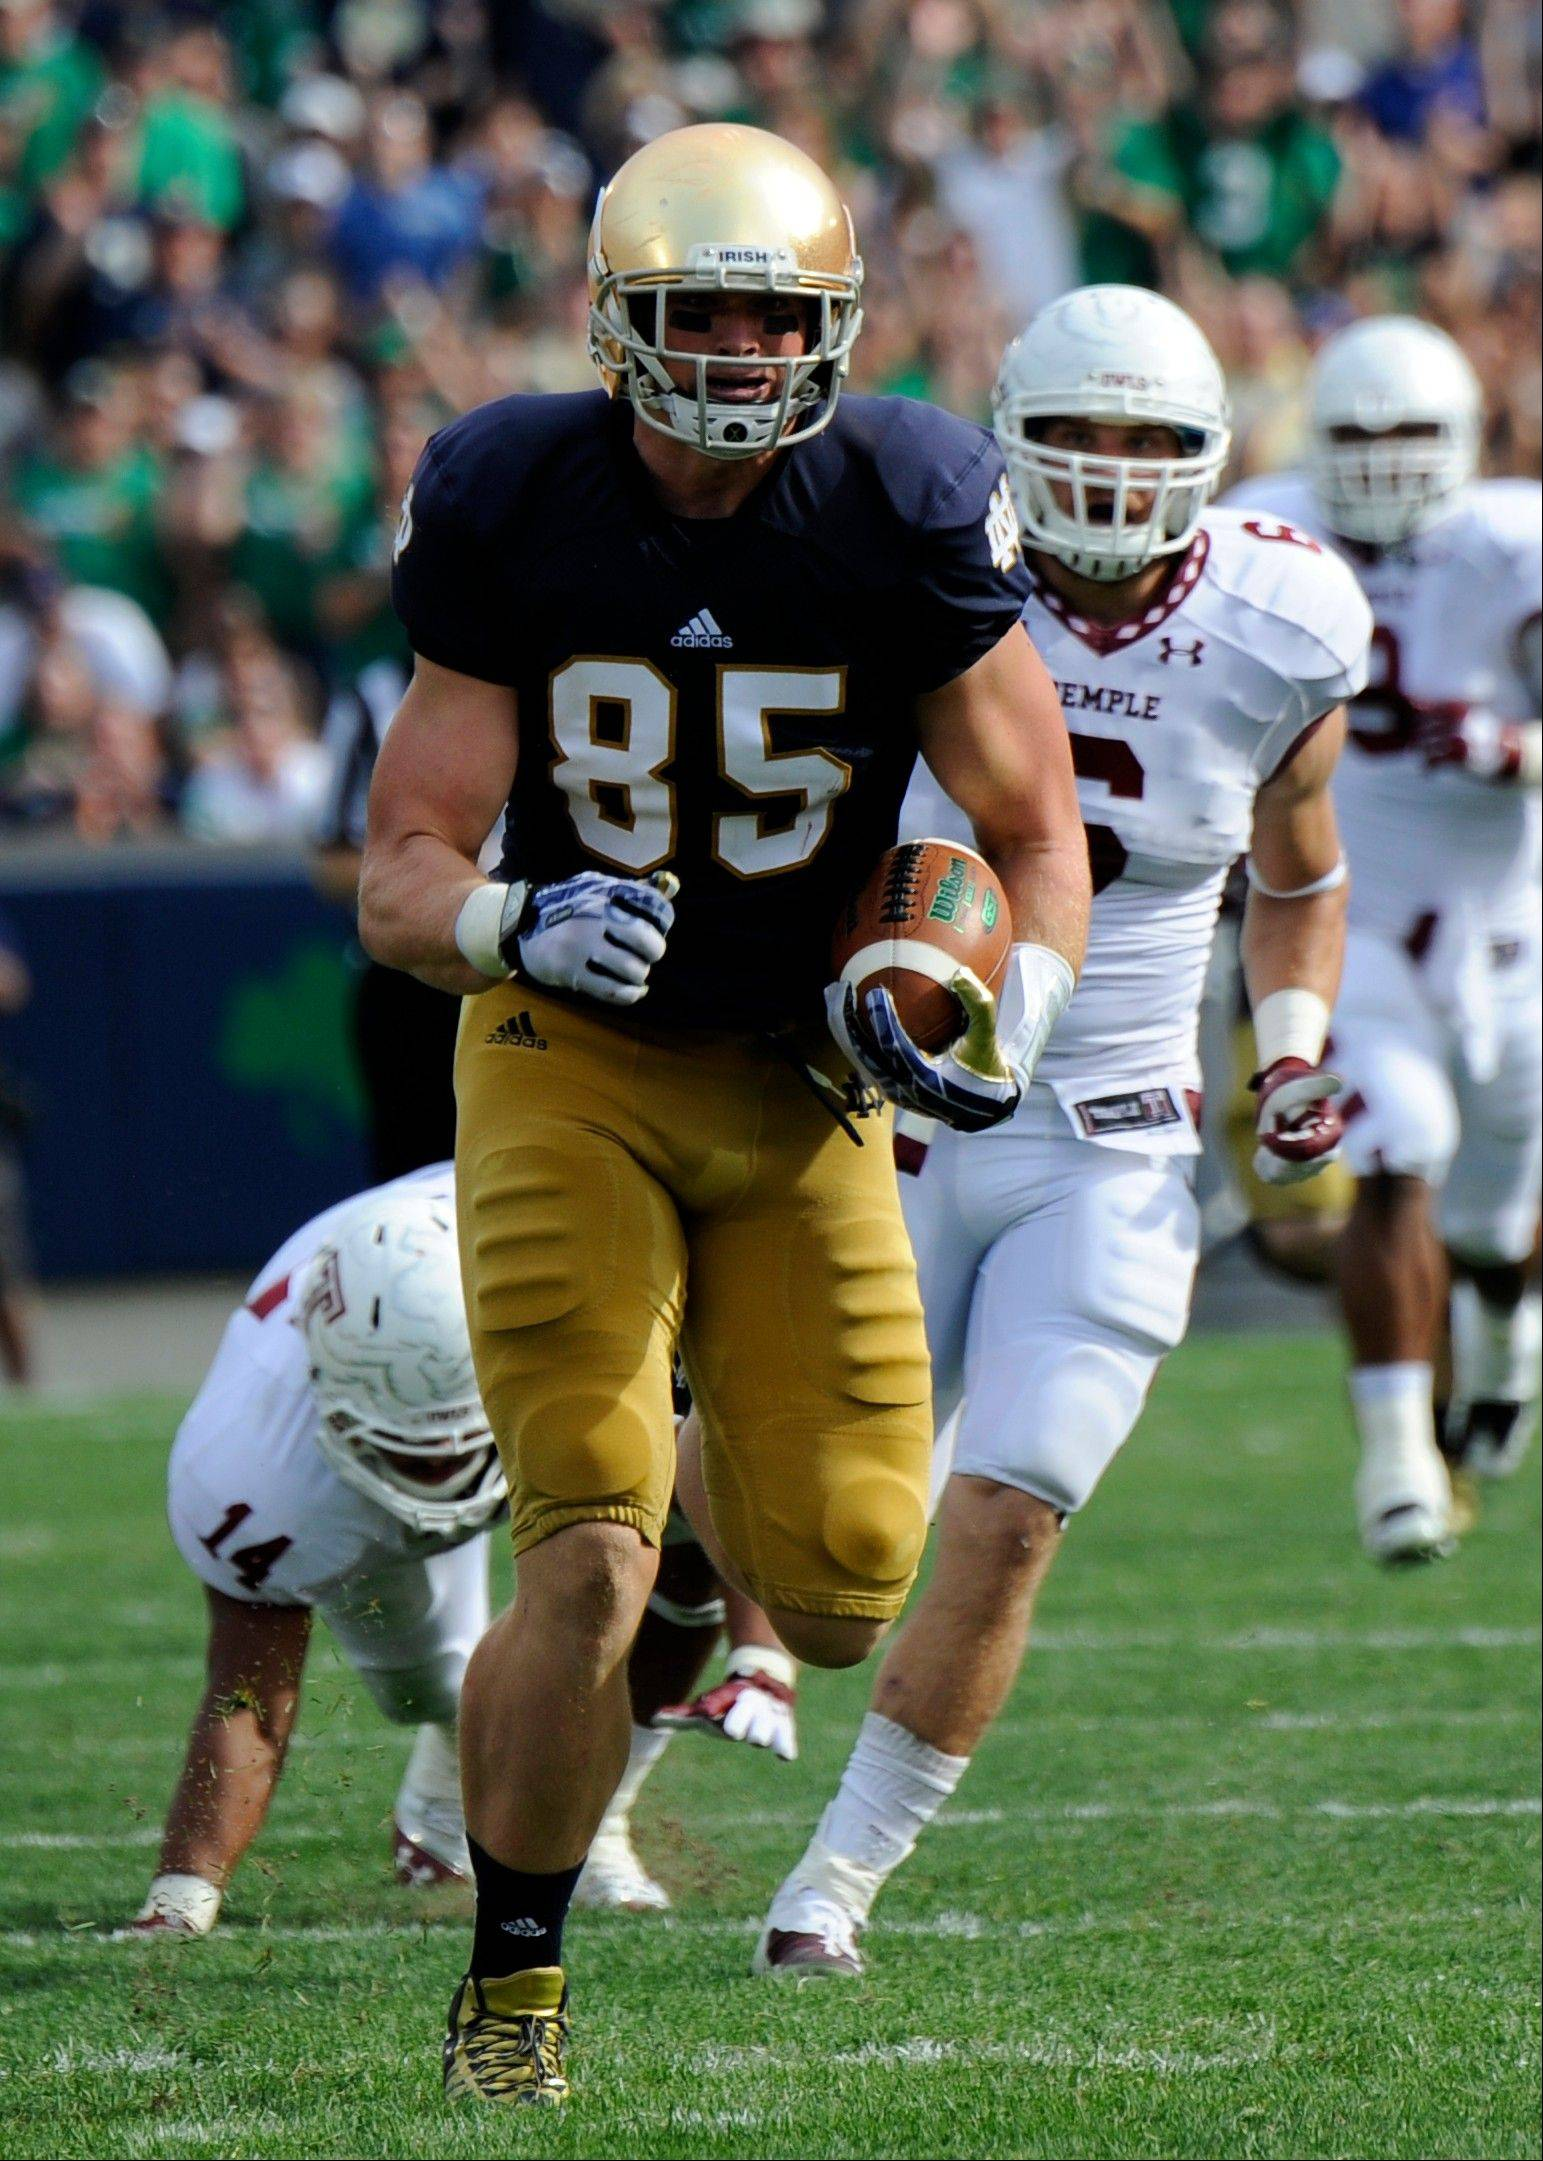 Notre Dame�s Troy Niklas started his college career at linebacker but switched to tight end last season.